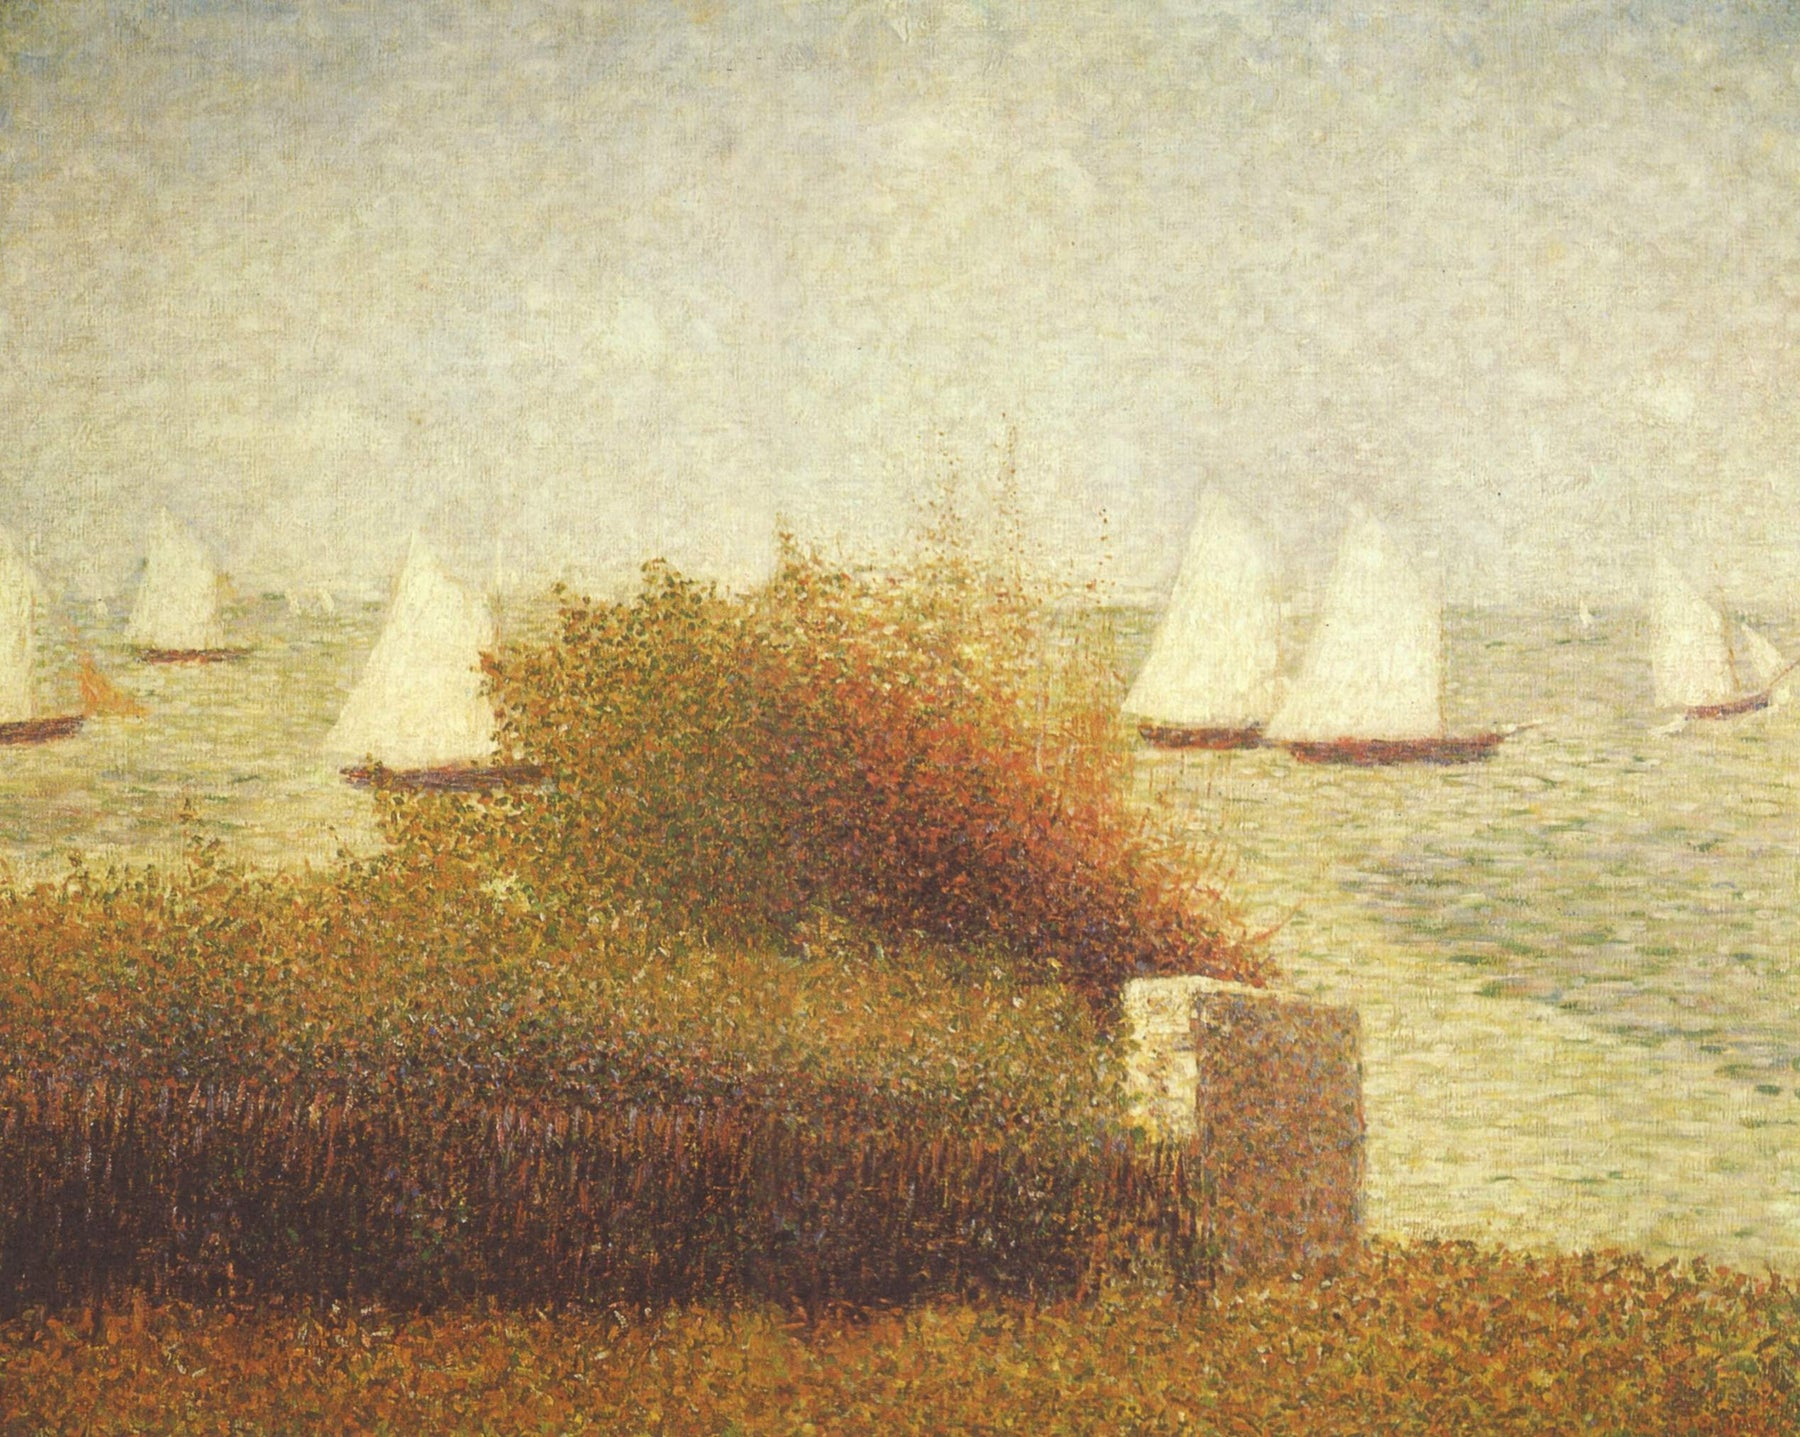 Race in Grandcamp by Georges Seurat Reproduction Painting by Blue Surf Art